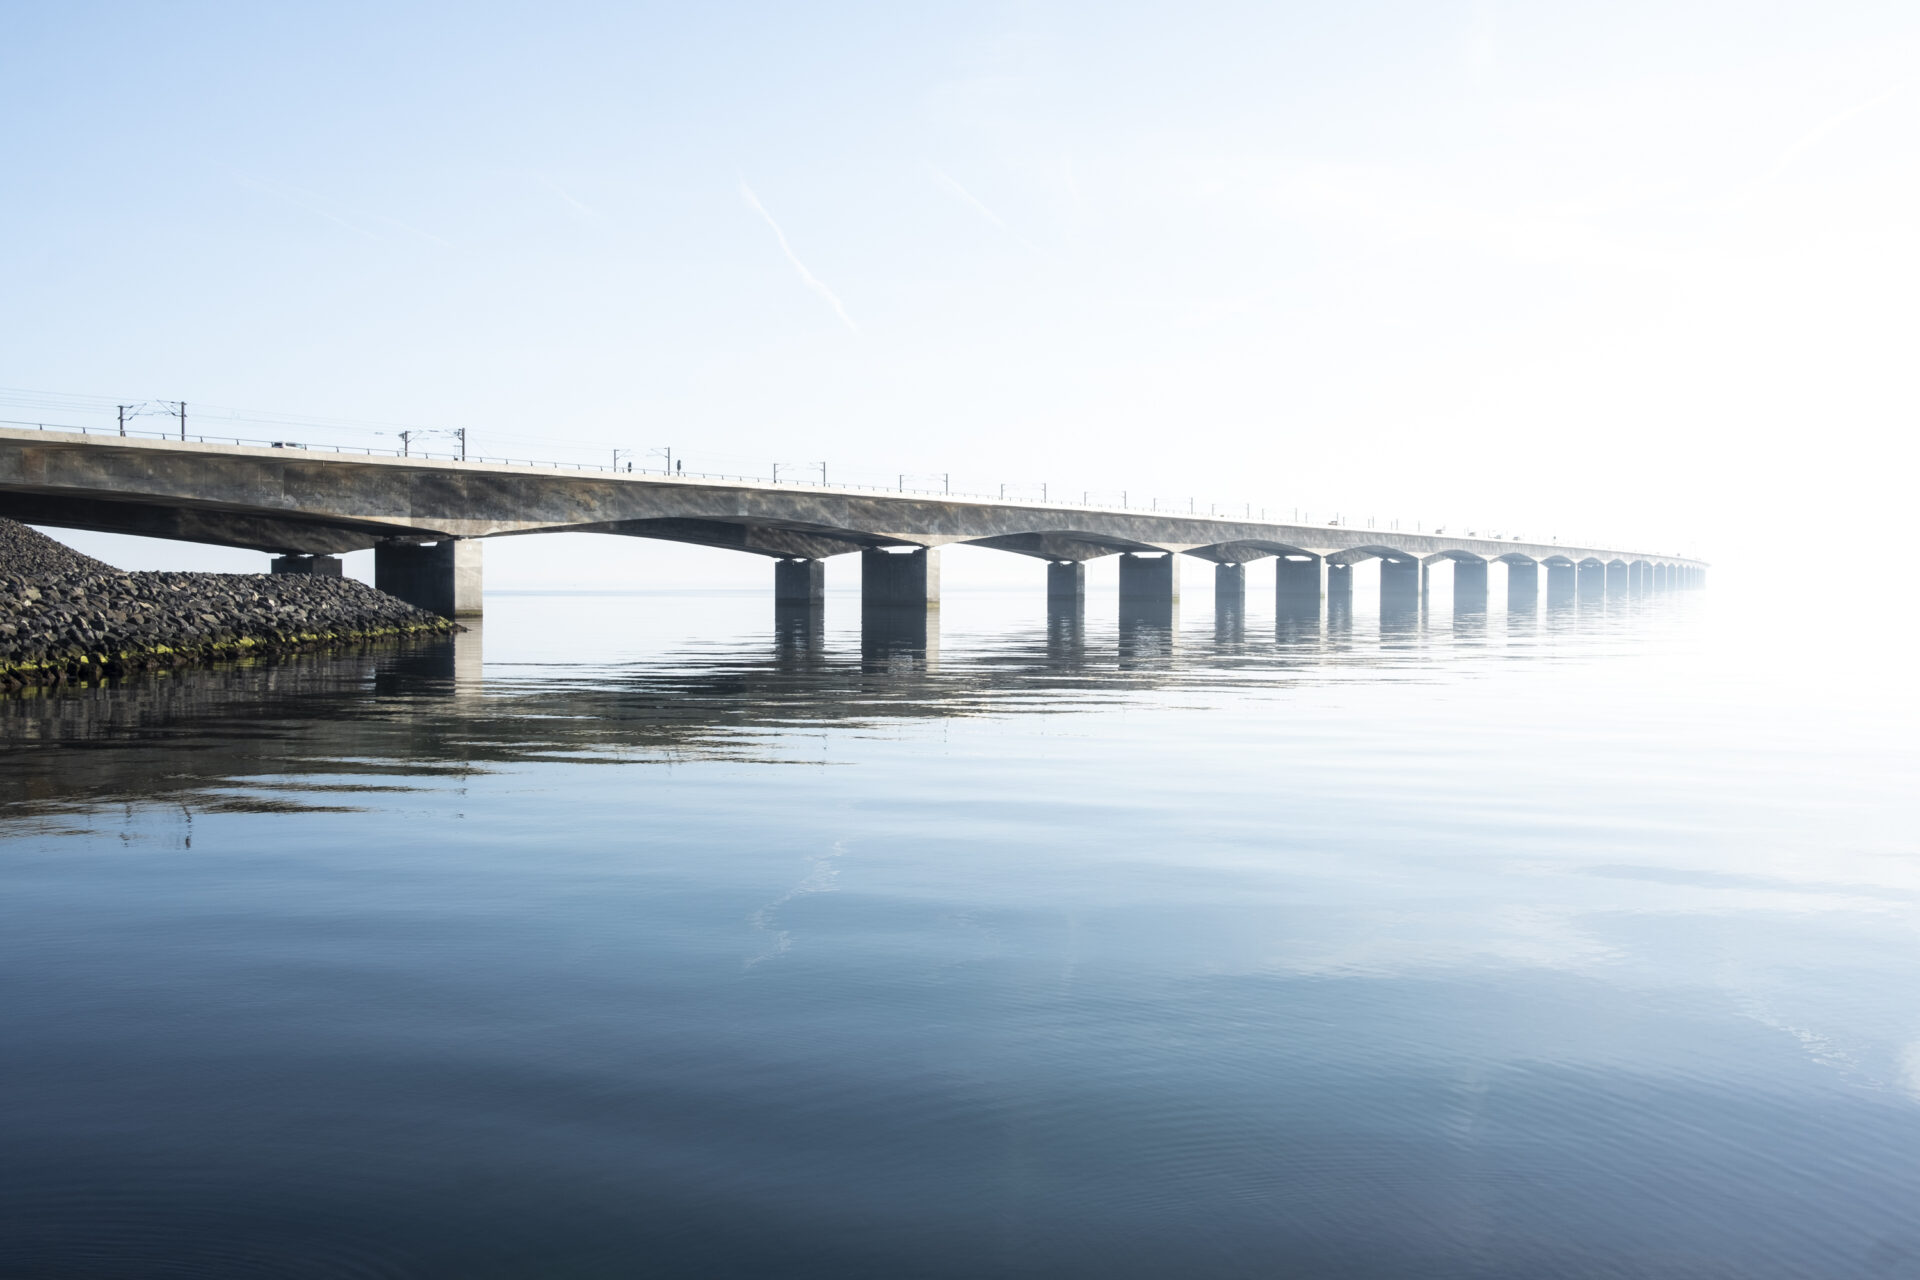 Biggest bridge in Denmark